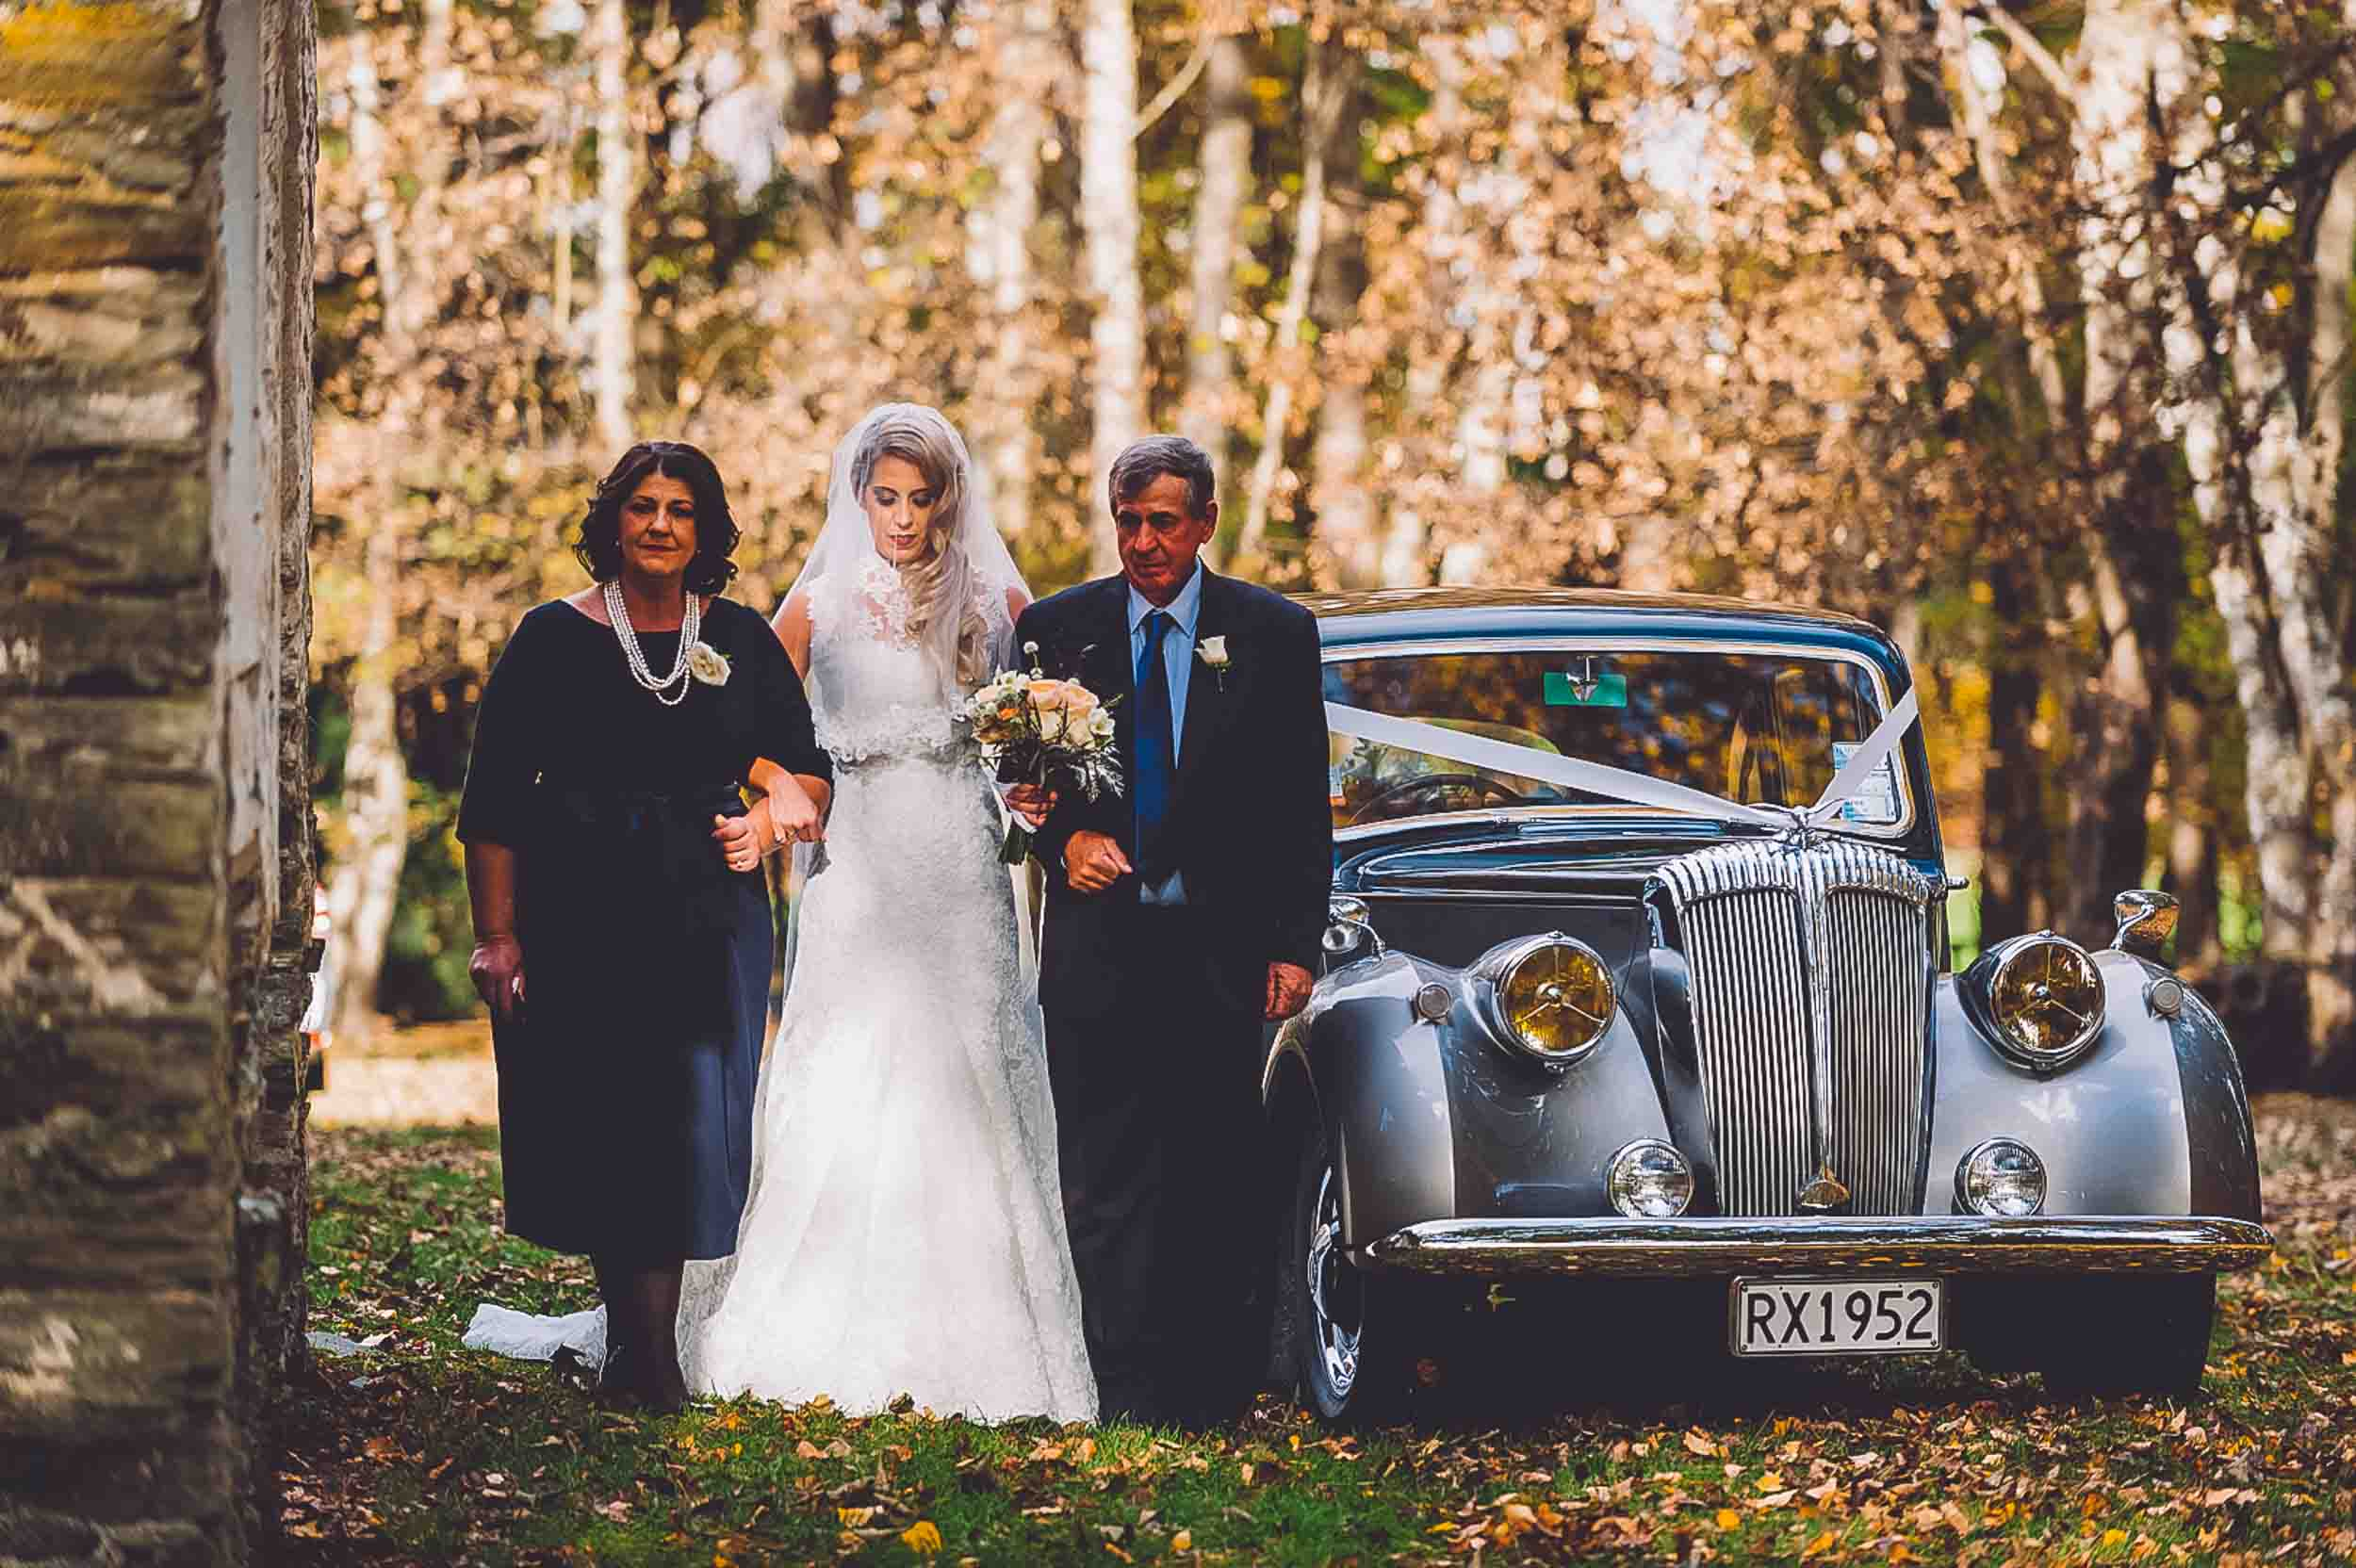 Thurlby Domain bride walking down the aisle vintage wedding car